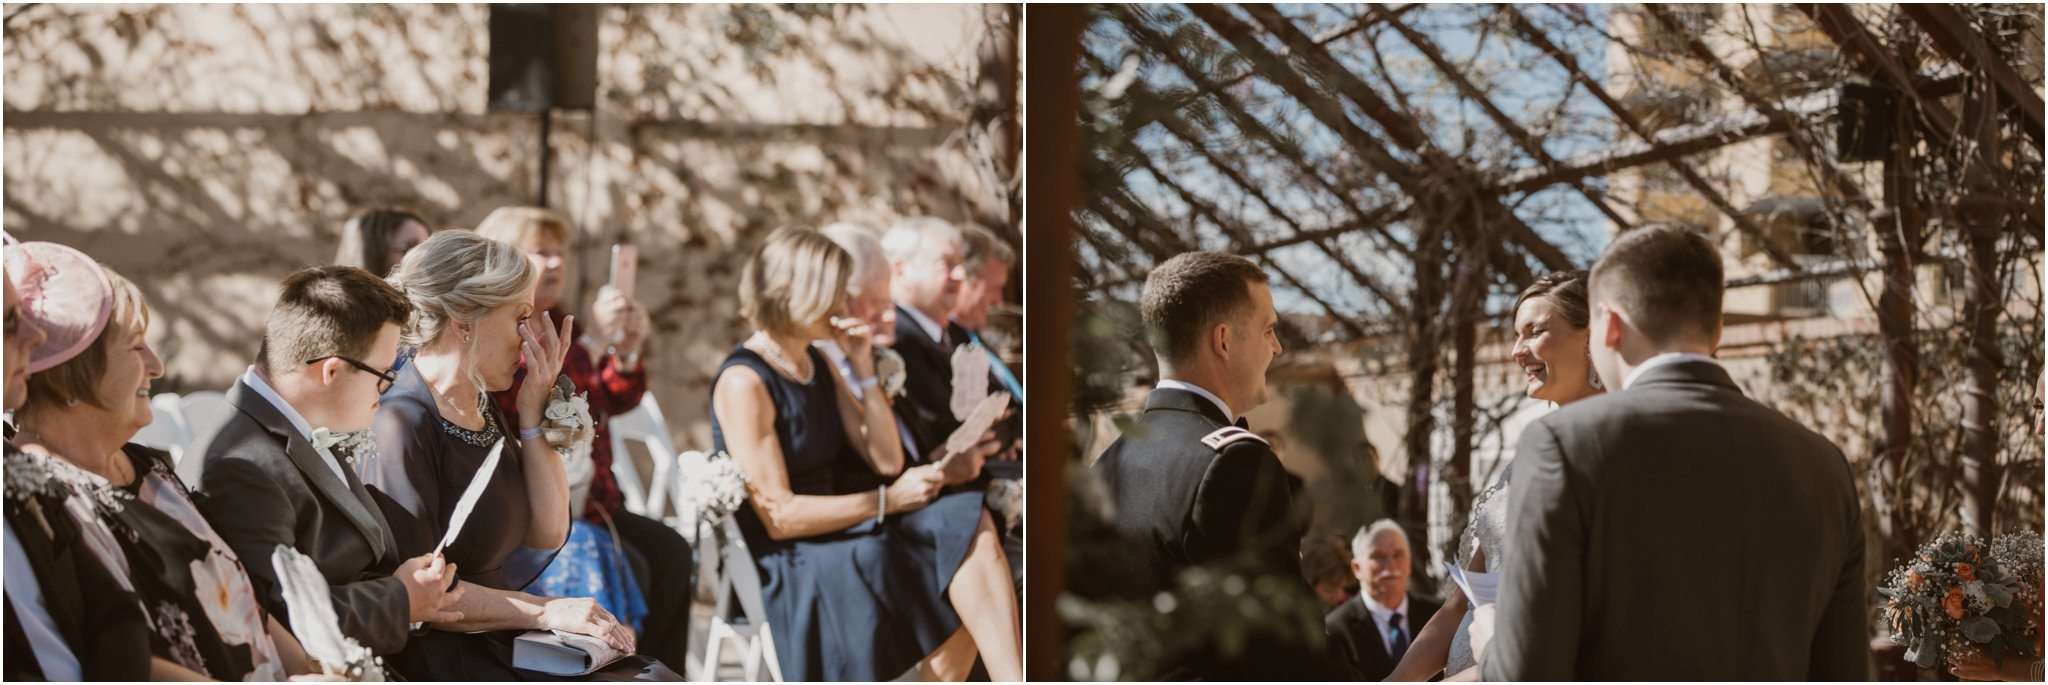 22Blue Rose Photography_ Albuquerque Wedding Photographer_ Santa Fe Wedding Photographers